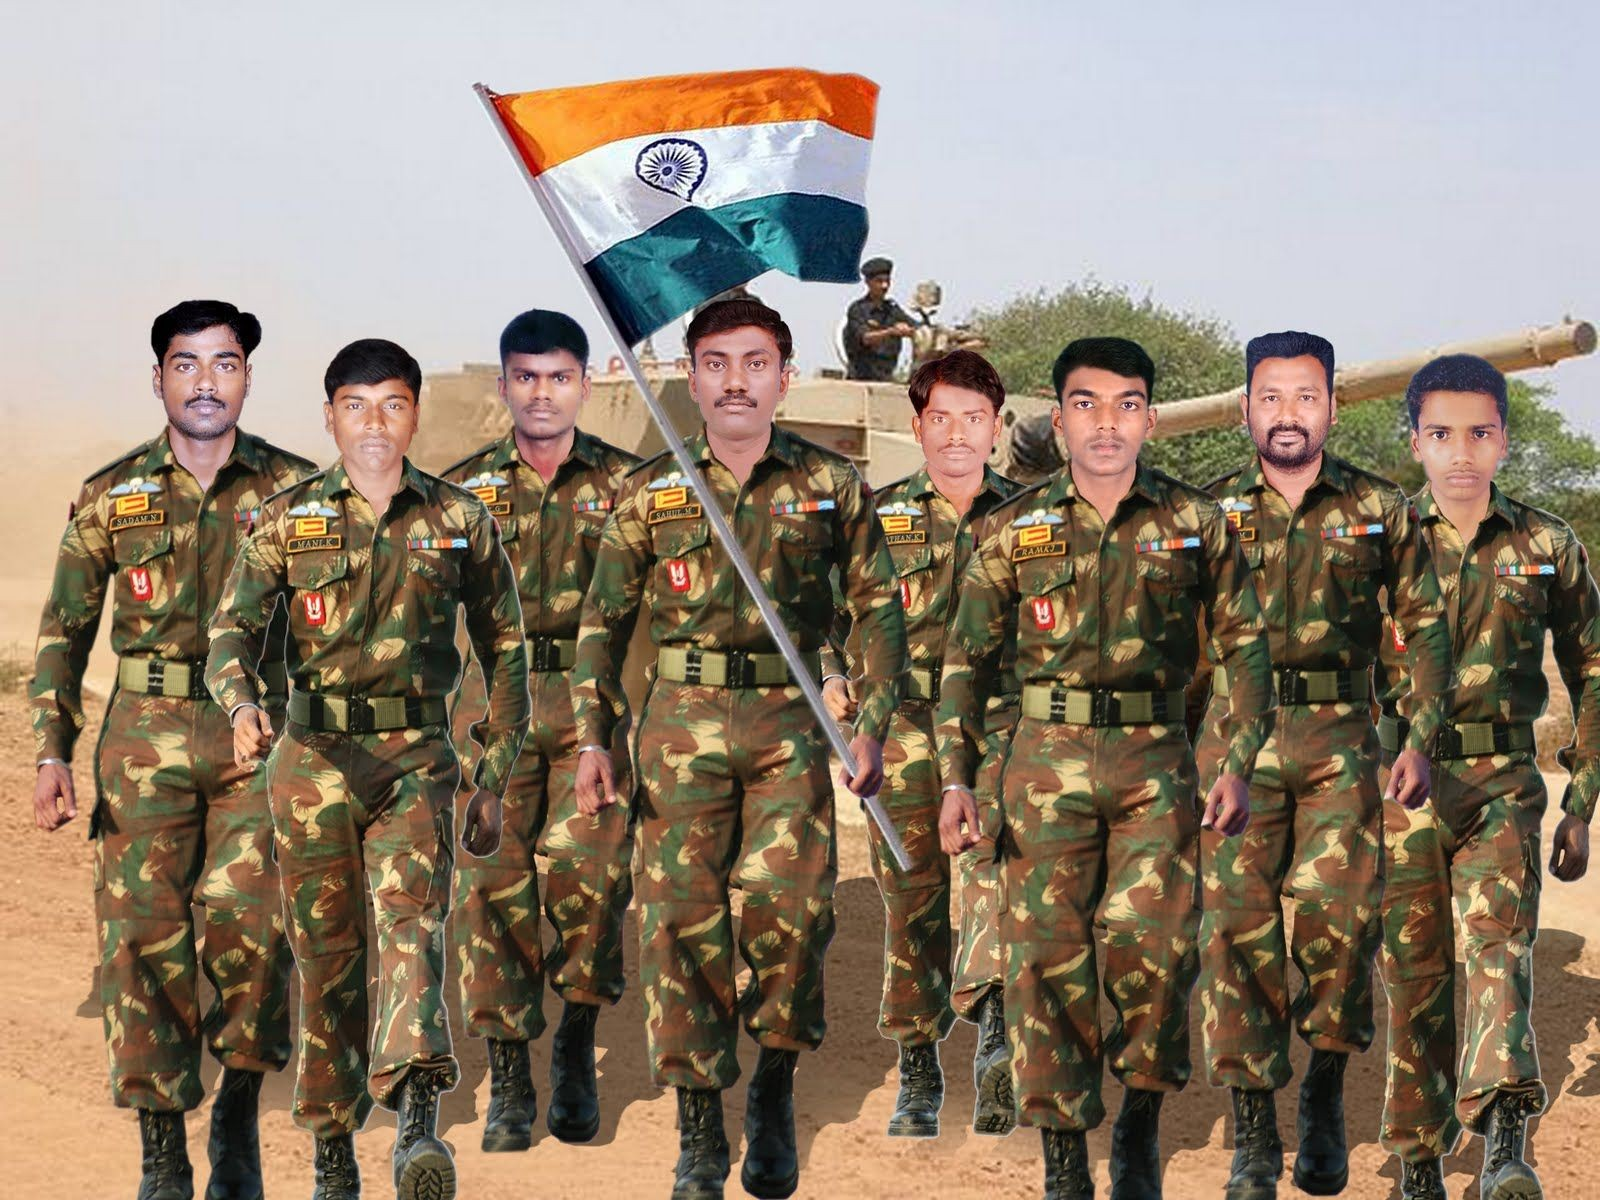 Indian Army Photos Hd Wallpaper India And Pakistan Flag 251555 Hd Wallpaper Backgrounds Download